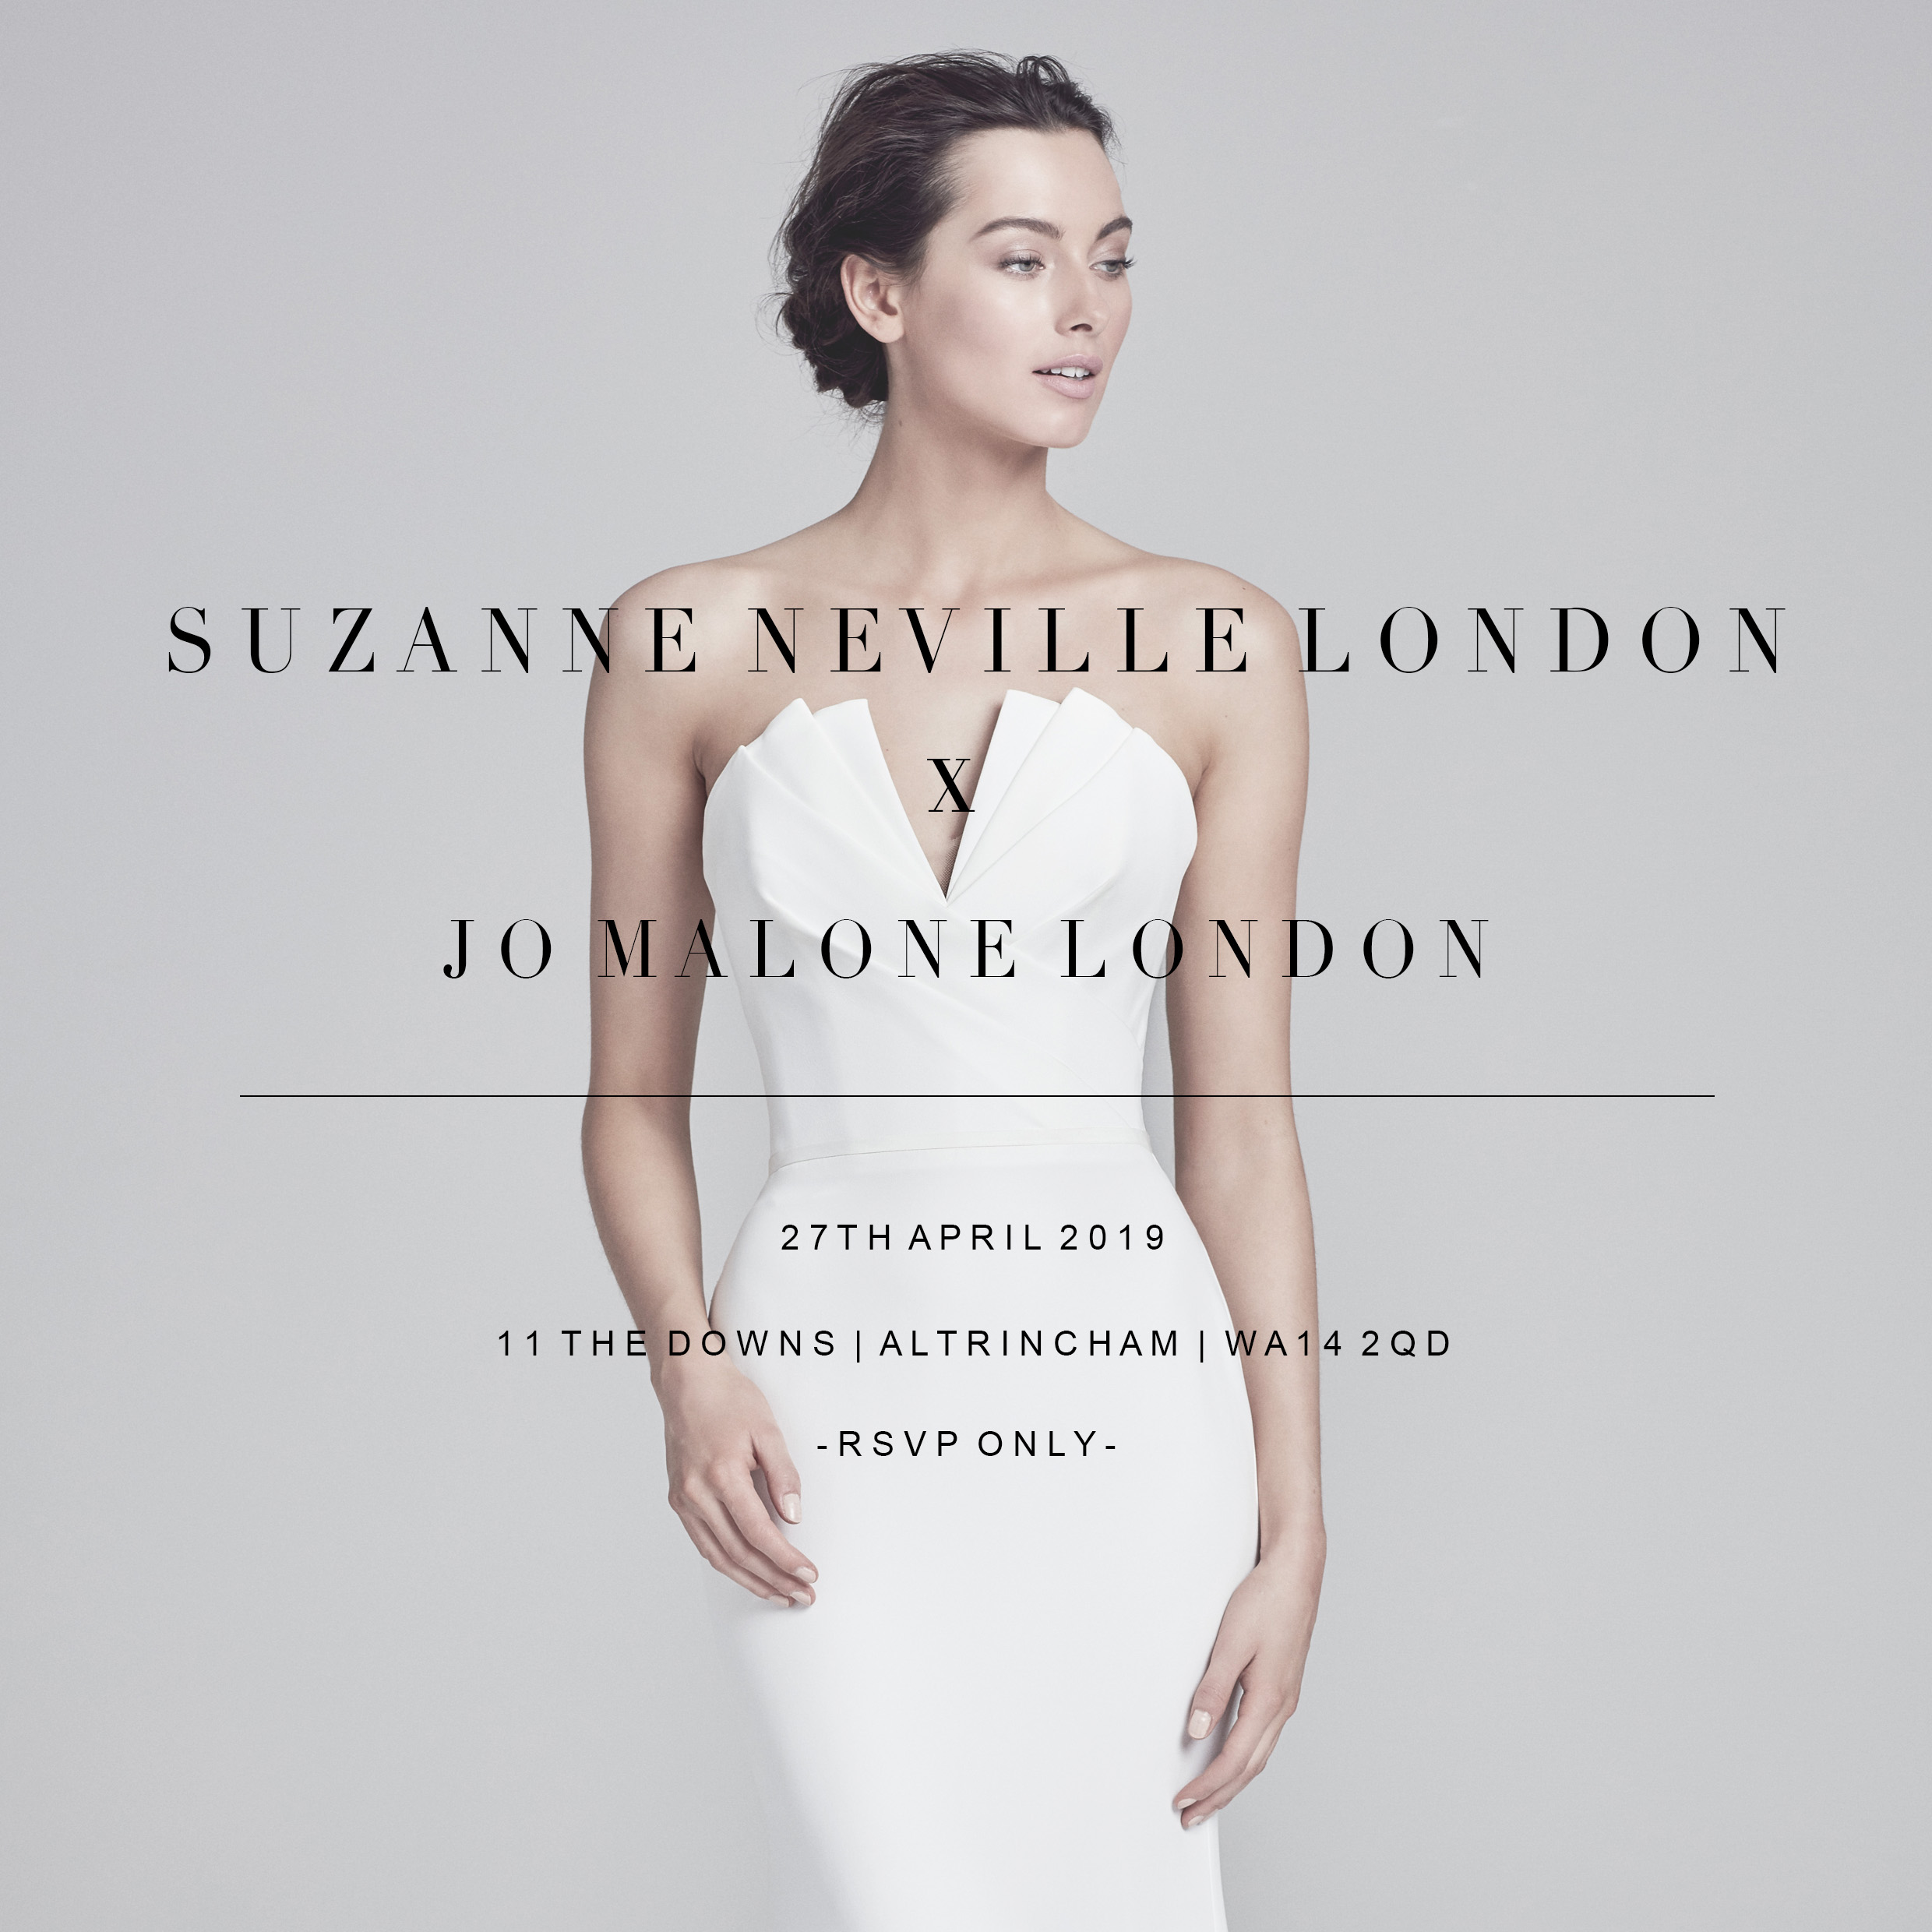 Suzanne Neville Altrincham exclusive event with Jo Malone London.